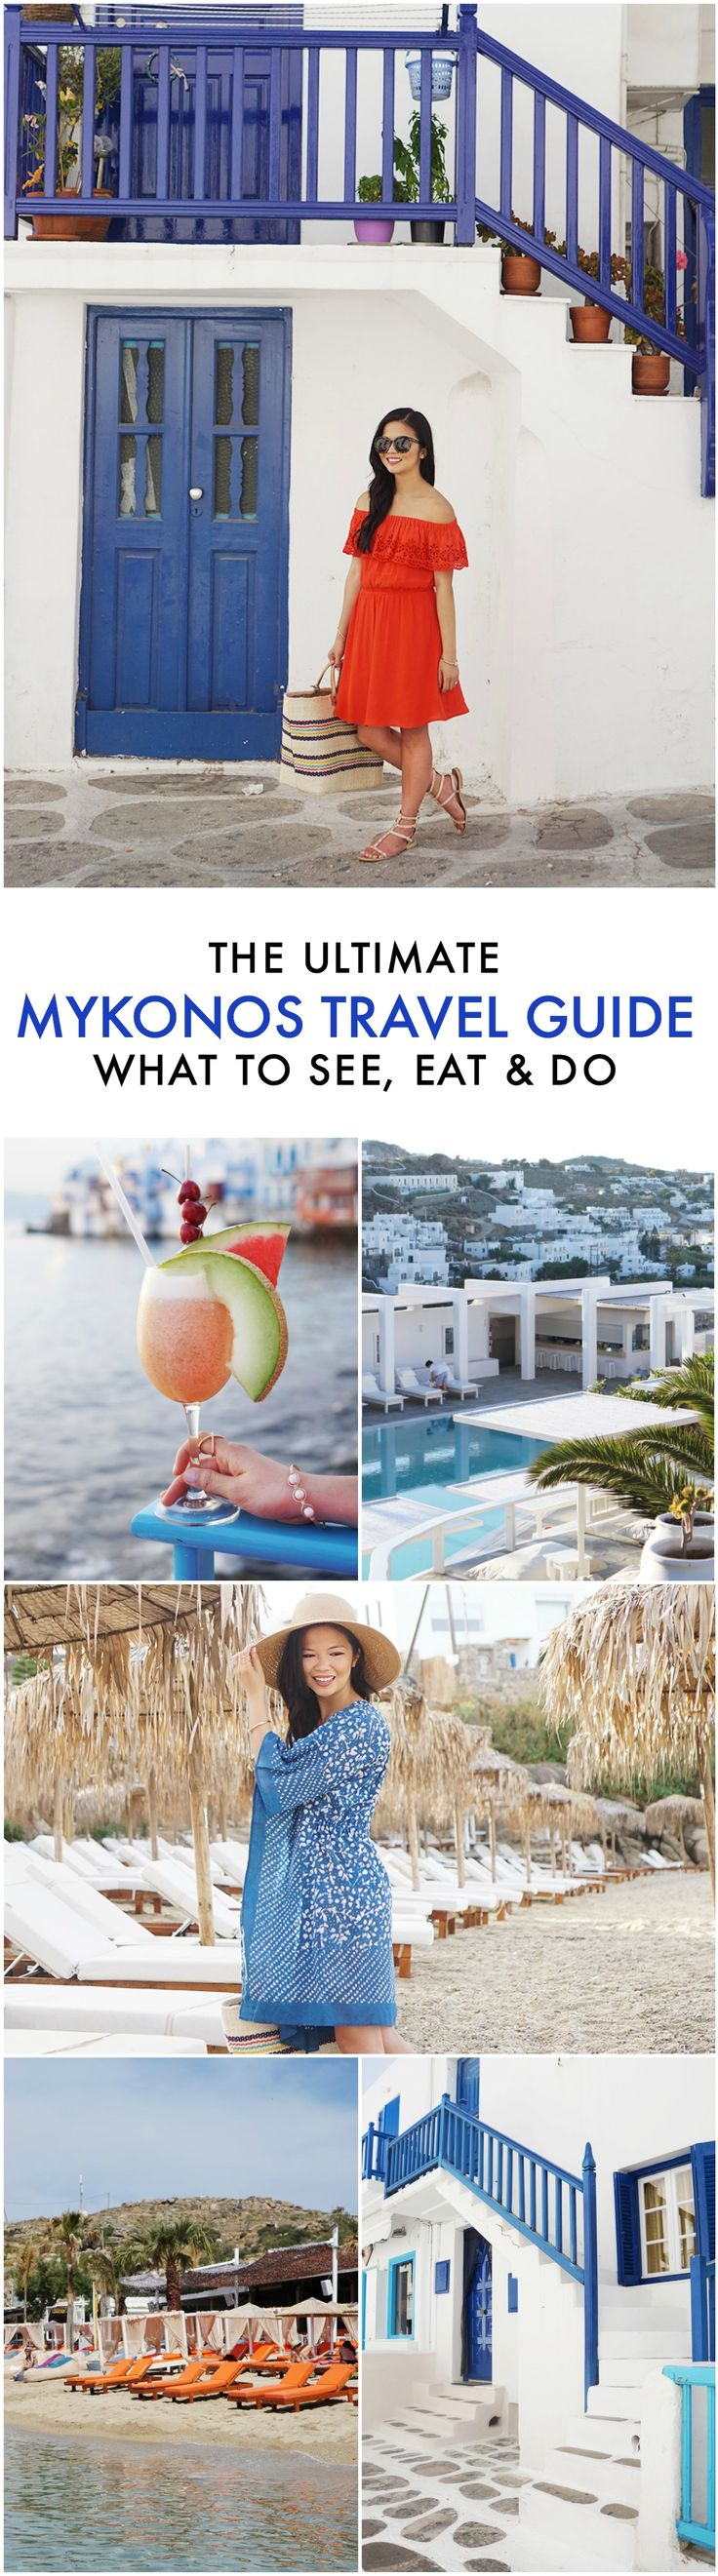 The Ultimate Travel Guide to Mykonos, Greece (What to See, Eat & Do)